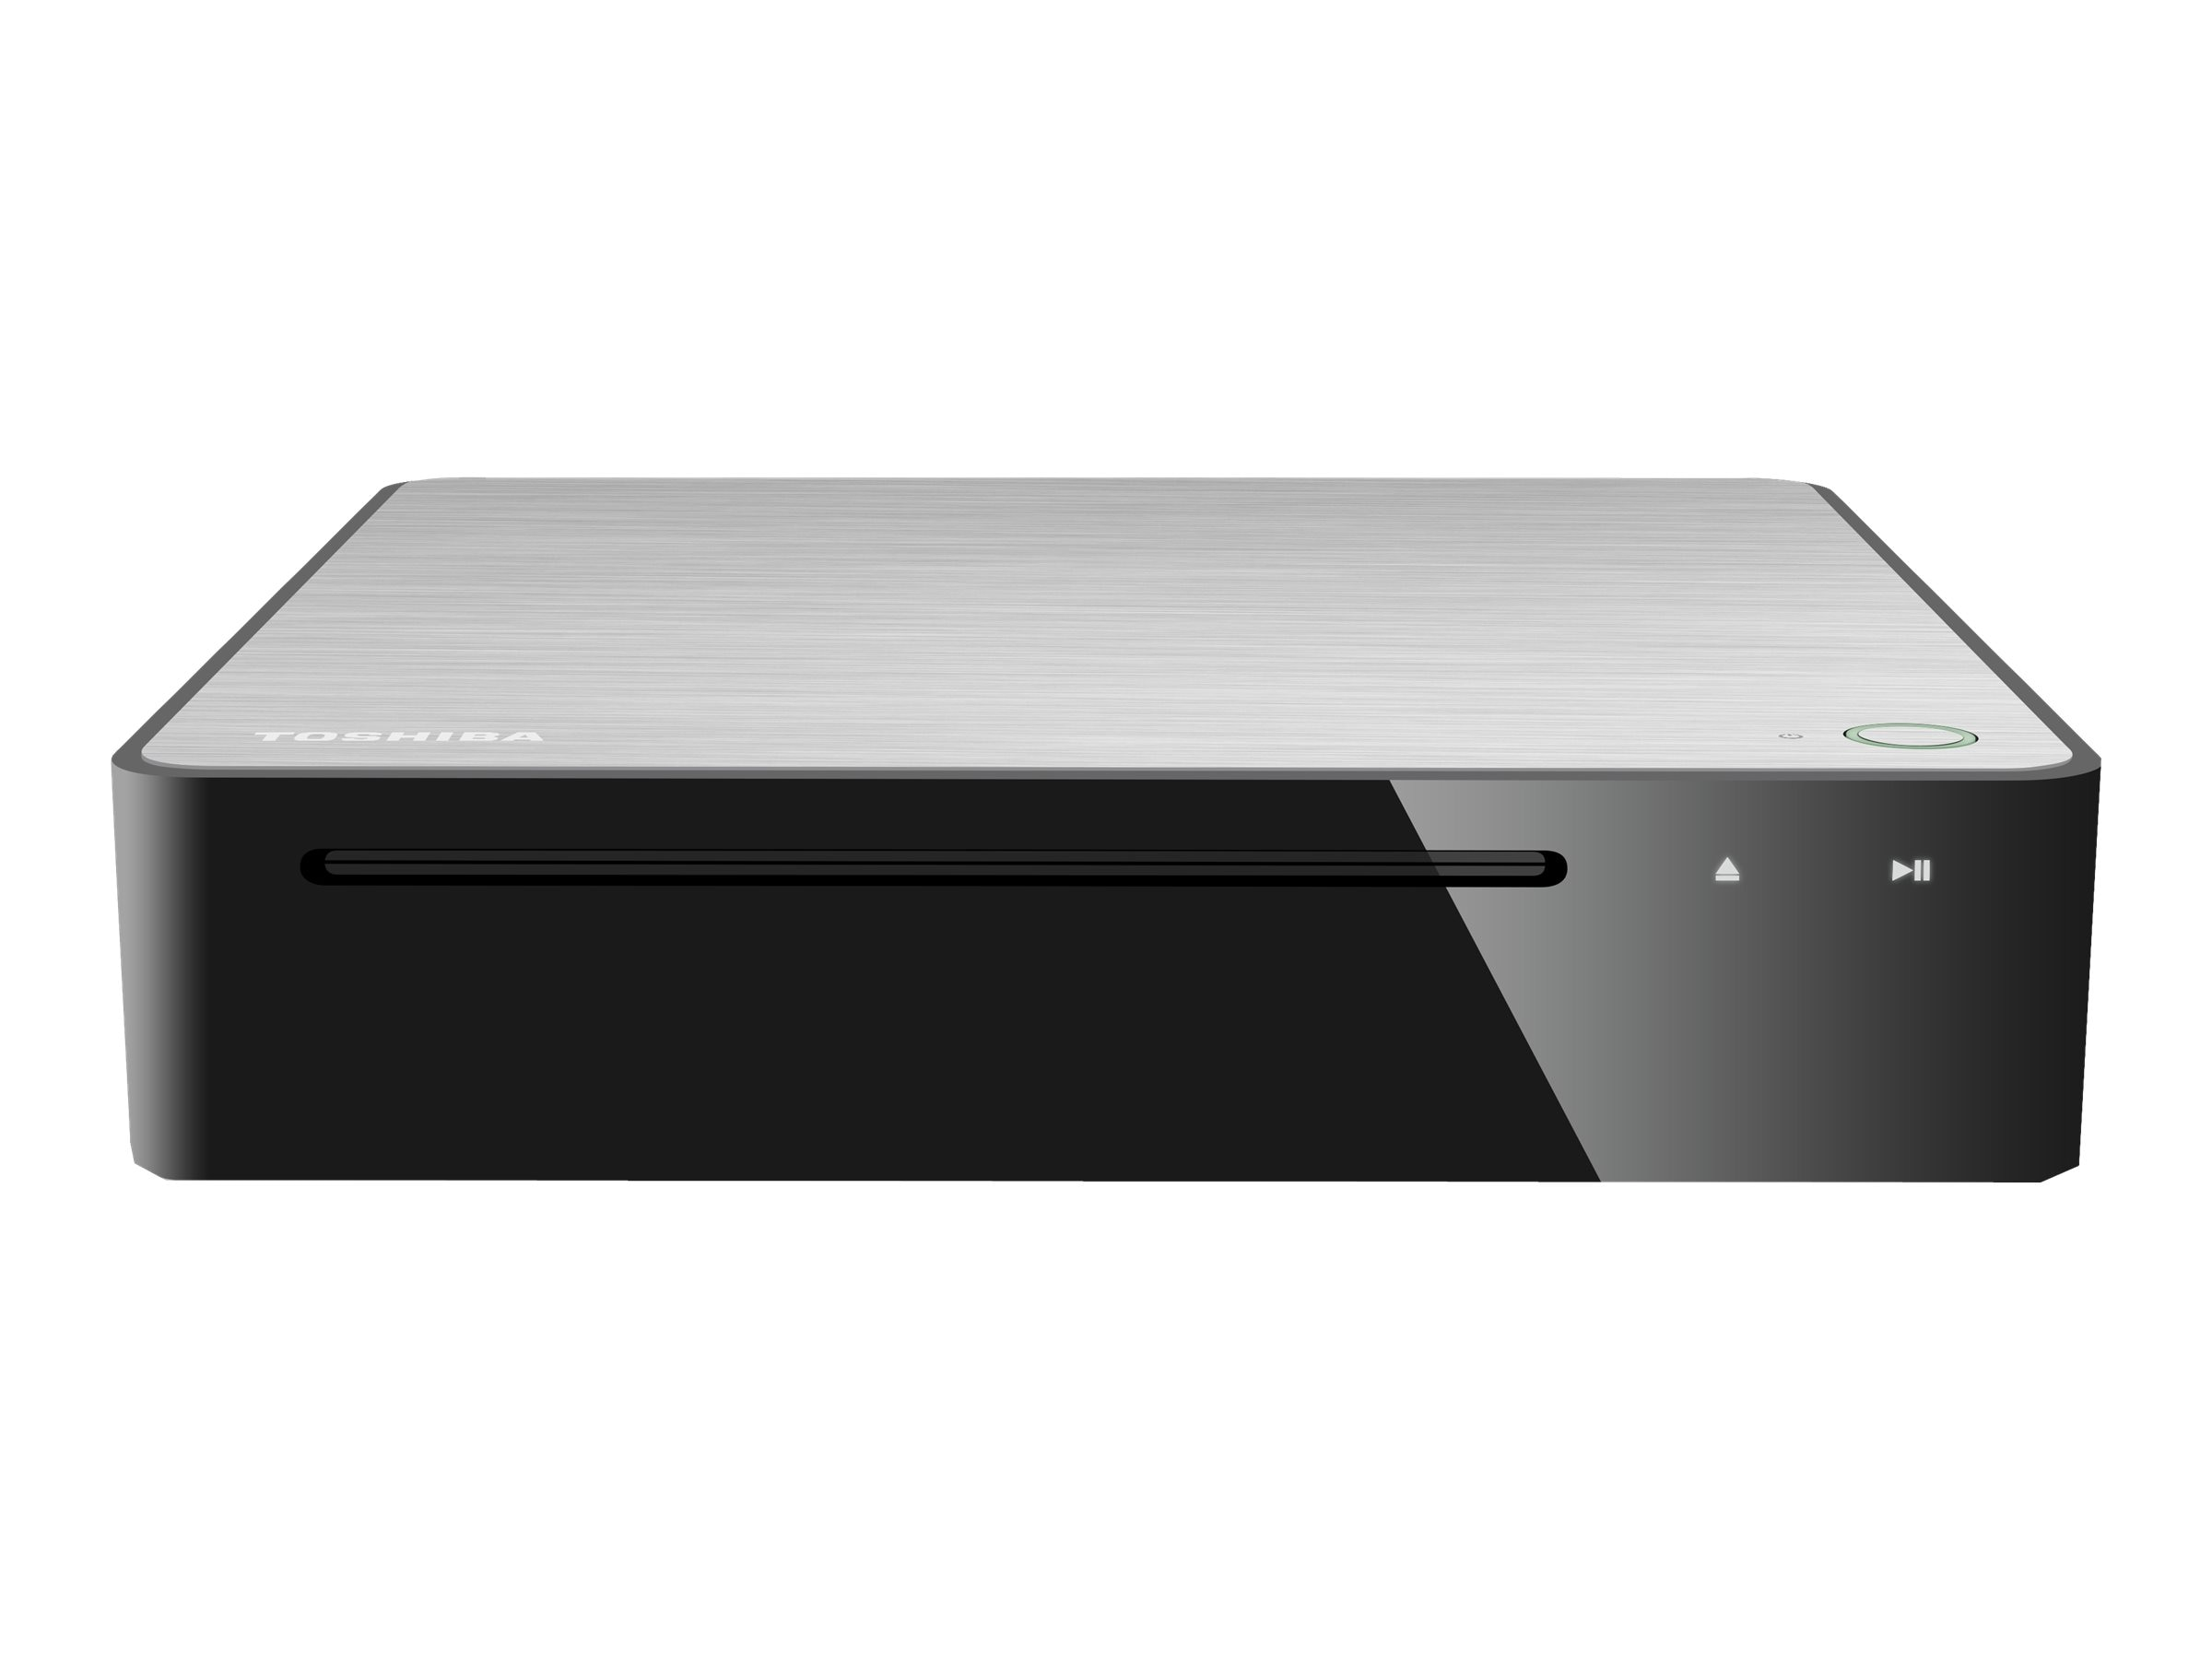 Toshiba Symbio 4K Streaming Media and Disc Player, BDX5500, 17598184, Blu-Ray Players & Recorders